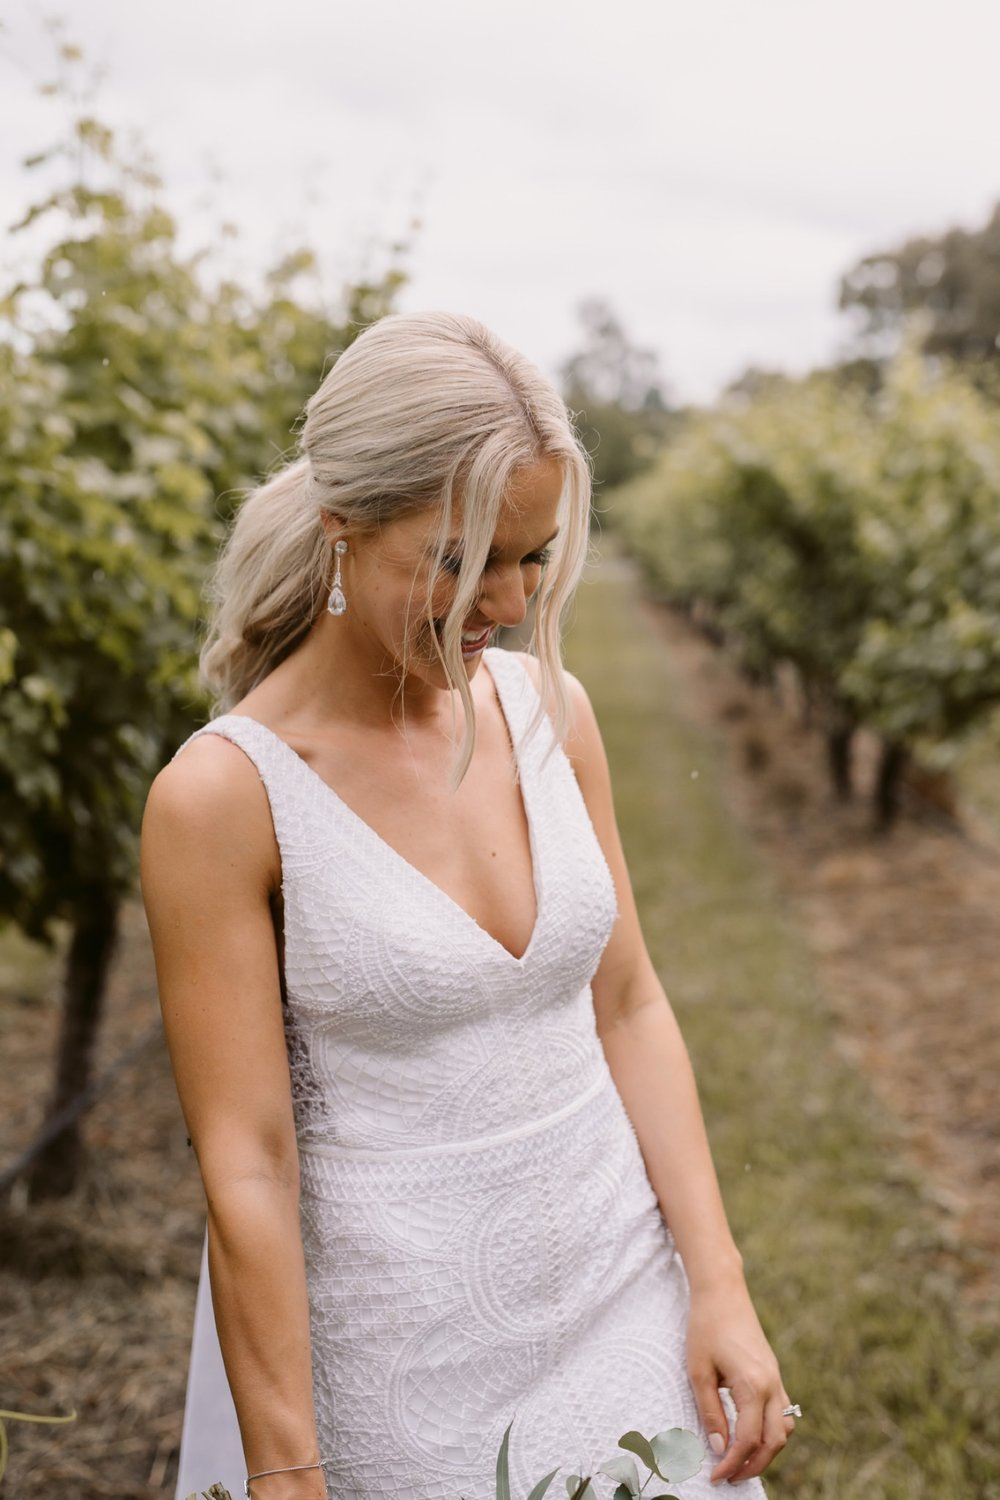 Immerse Yarra Valley Winery Wedding Photography83.jpg